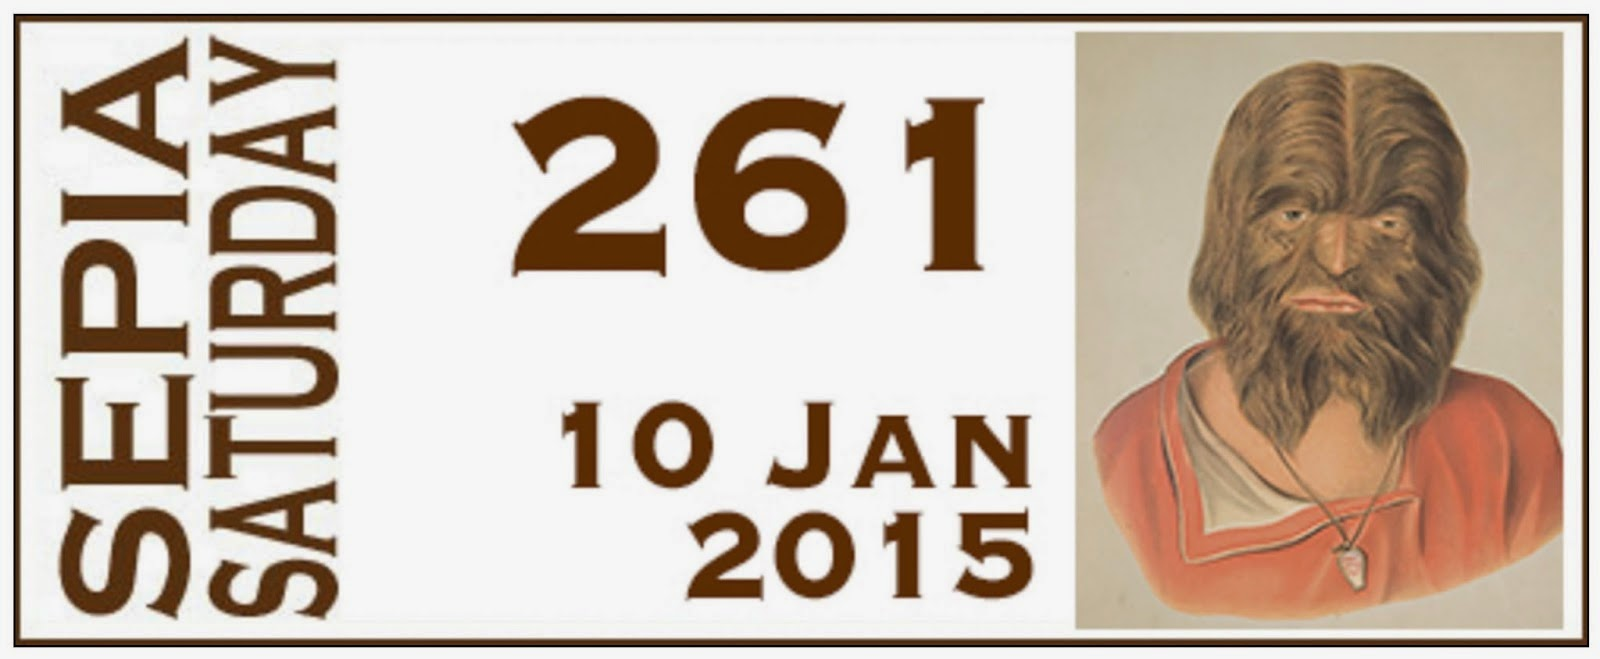 http://sepiasaturday.blogspot.com/2015/01/sepia-saturday-261-10-january-2015.html